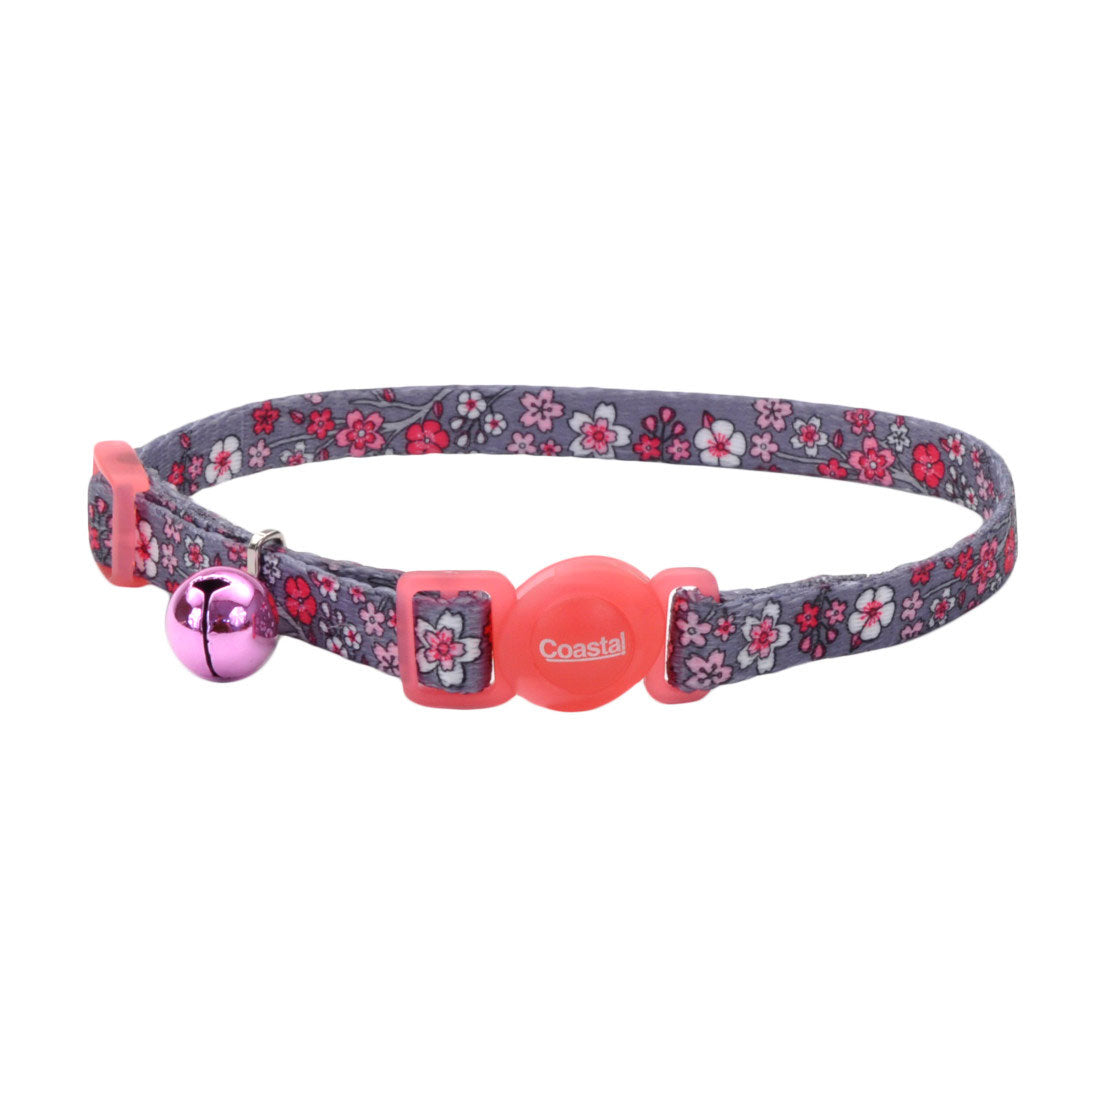 Coastal Fashion Adjustable Breakaway Collar Pink Cherry Blossoms - Collares para Gatos